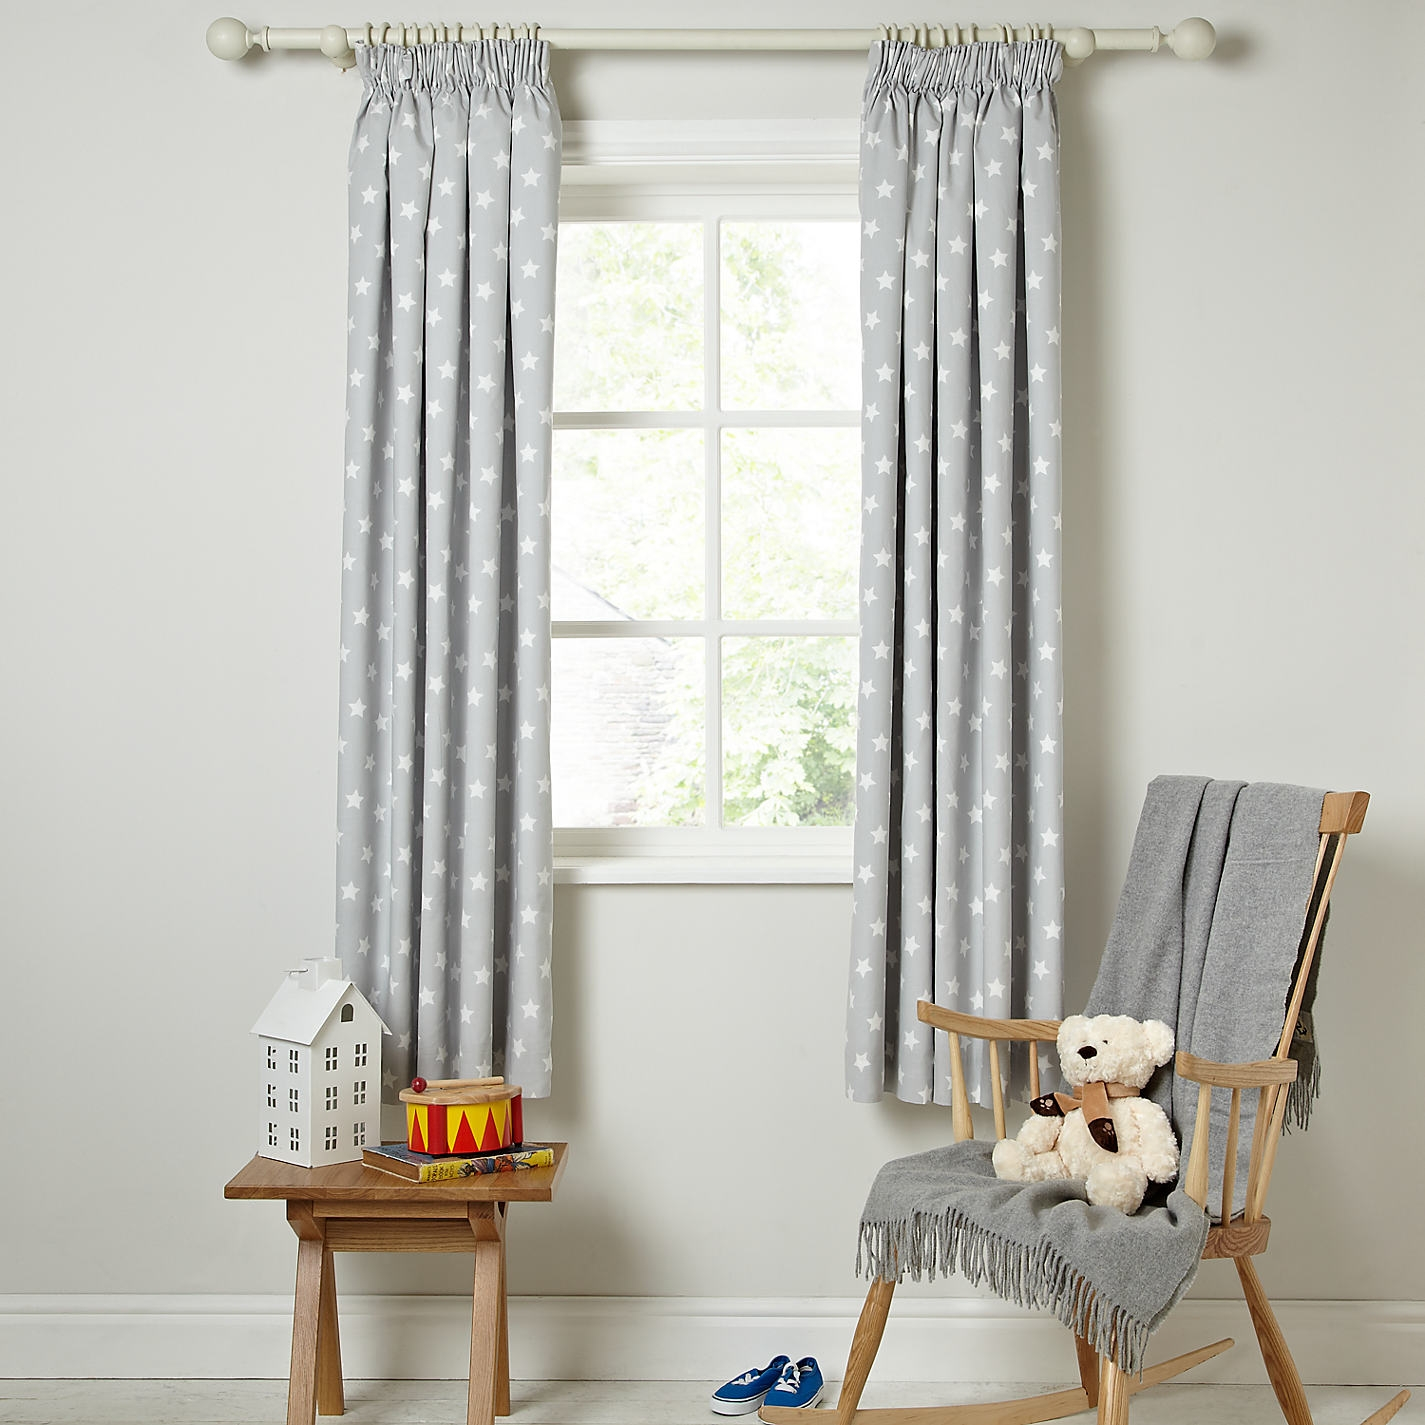 Childrens Blackout Curtains Stars Best Curtains 2017 With White Curtains With Blackout Lining (Image 2 of 15)